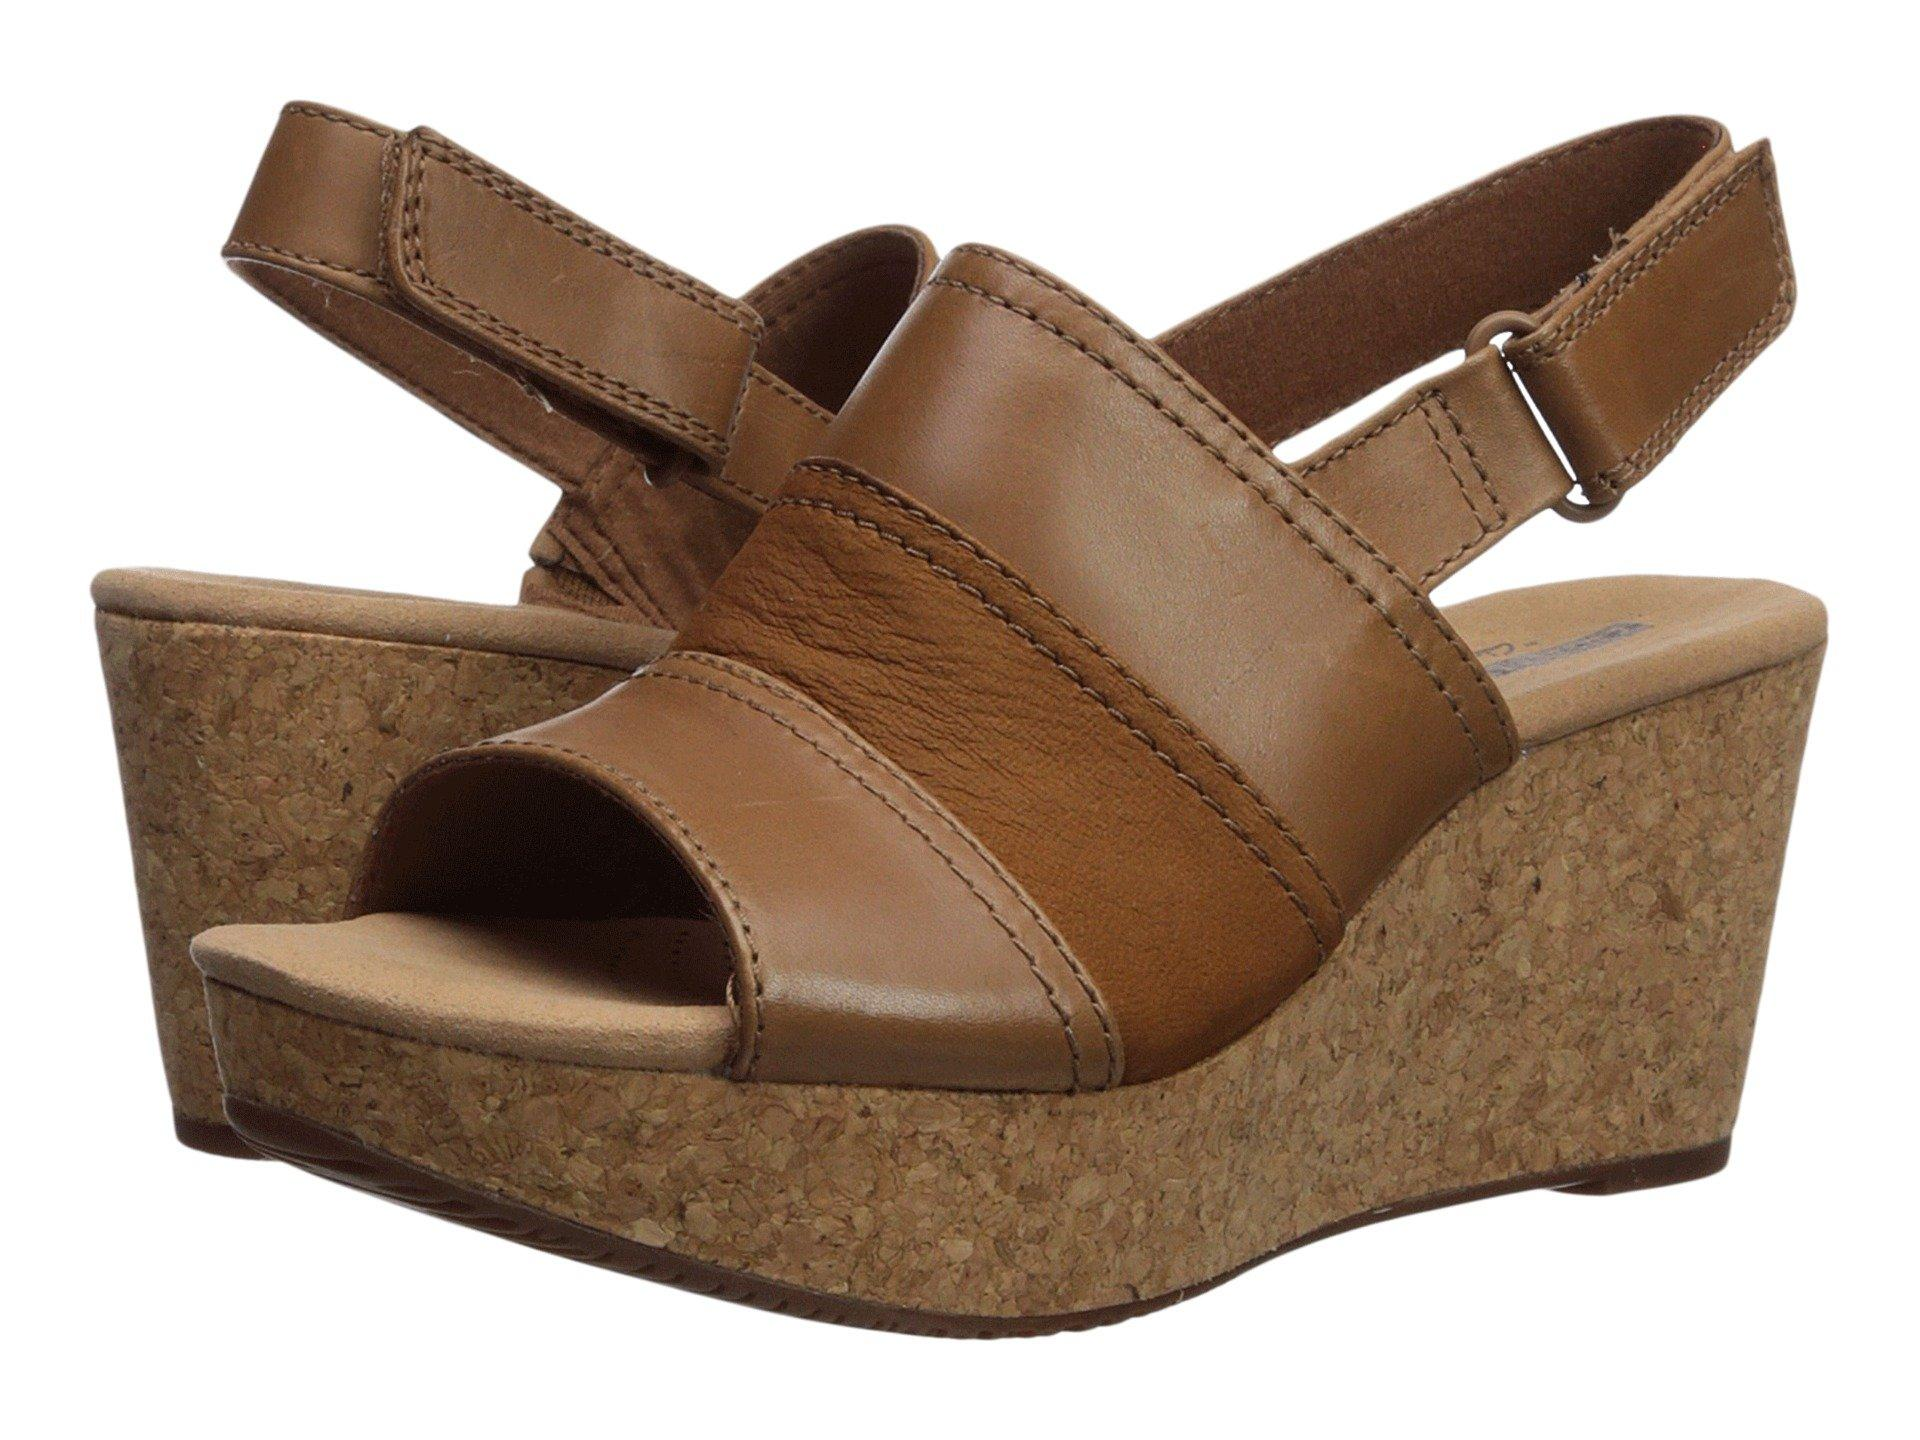 2defb8398fe Add some height to your warm-weather look in these charming Clarks® Annadel  Janis wedge sandals. Supple leather upper. Open-toe silhouette.